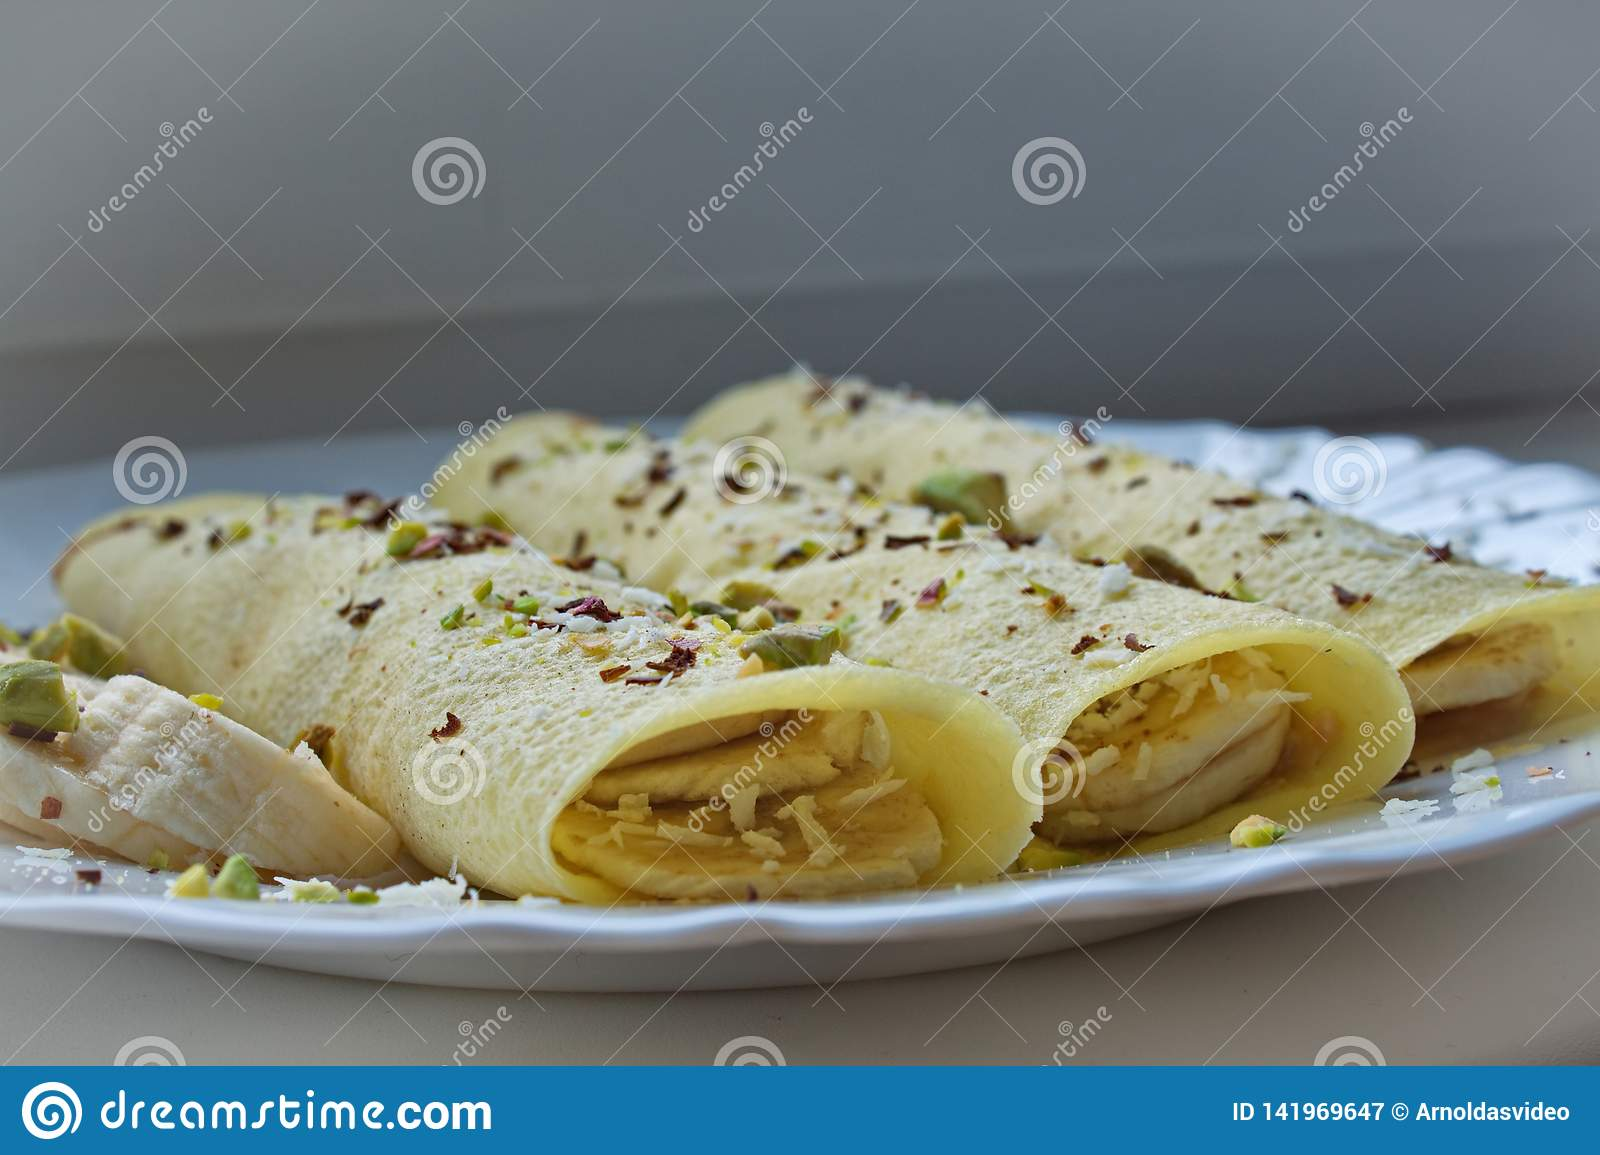 Soft focus close up of 3 crepes pancakes with peanut butter and bananas topped with chocolate and cocos shavings and pistachios